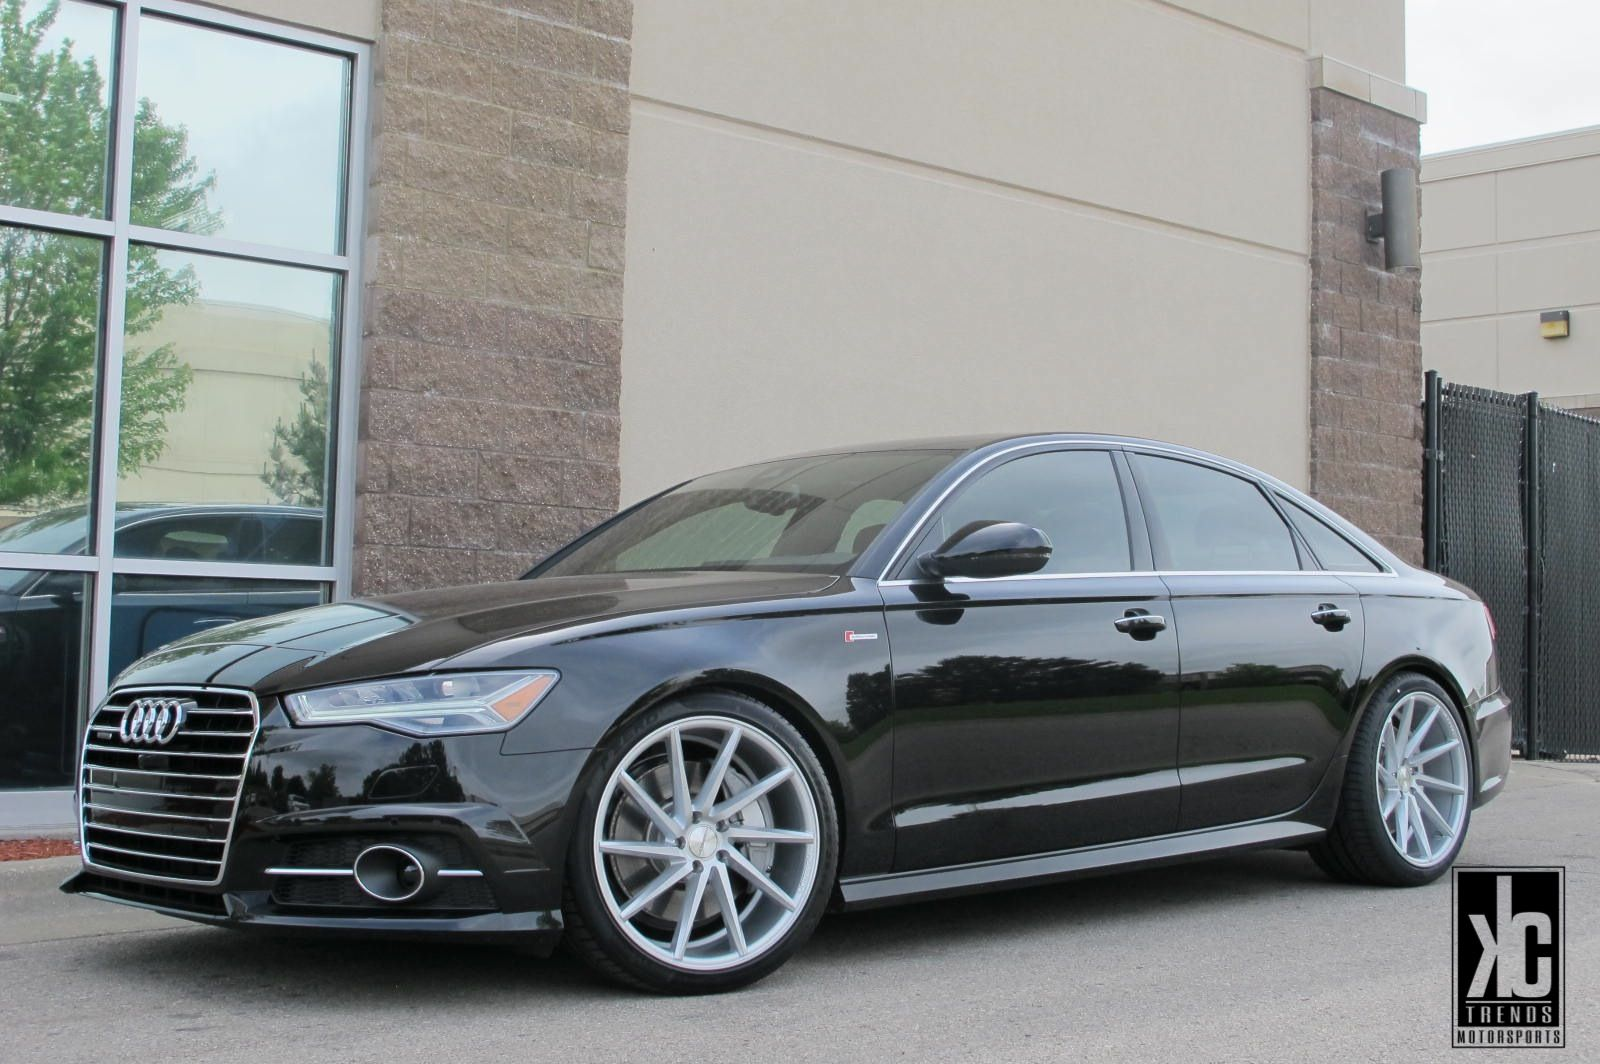 Vossen CVT Silvermachined Concave Wheels Mounted With Pirelli - Audi car tires